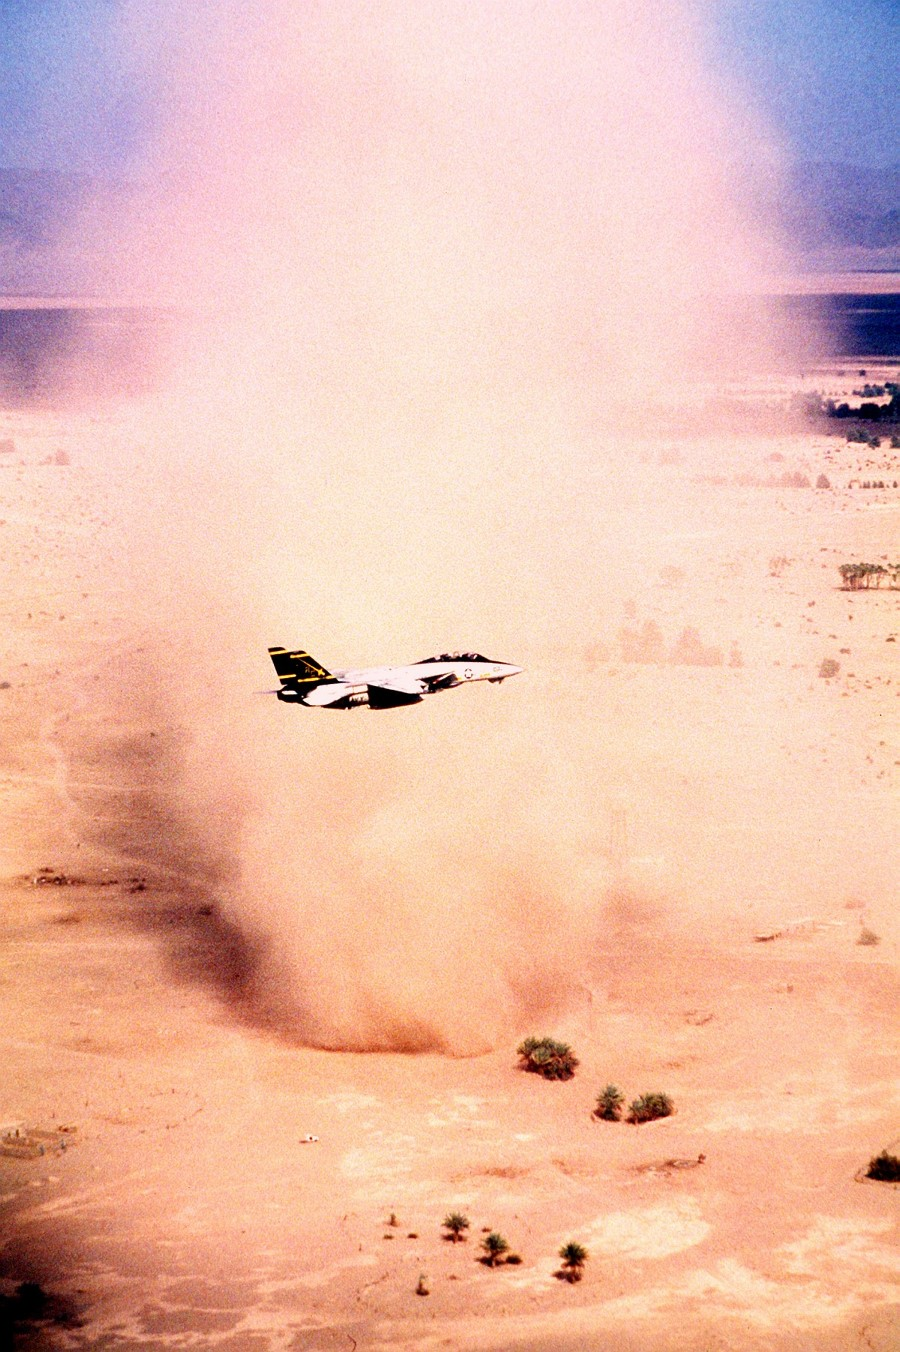 5. A United States Navy F-14A Tomcat